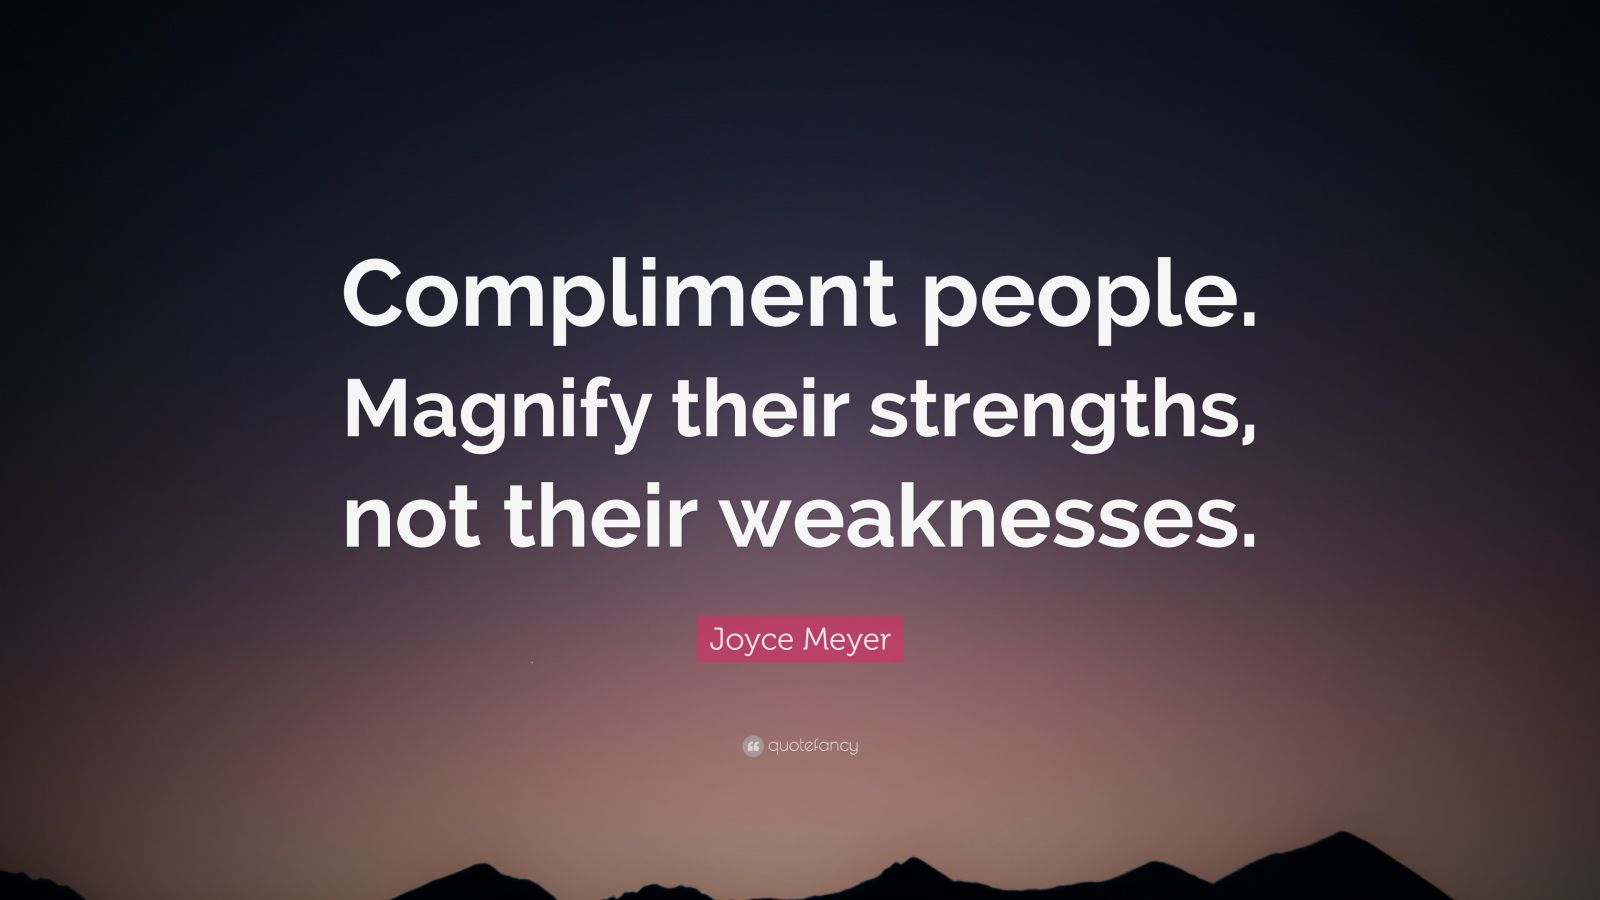 Wallpapers Philosophy Quotes Joyce Meyer Quote Compliment People Magnify Their